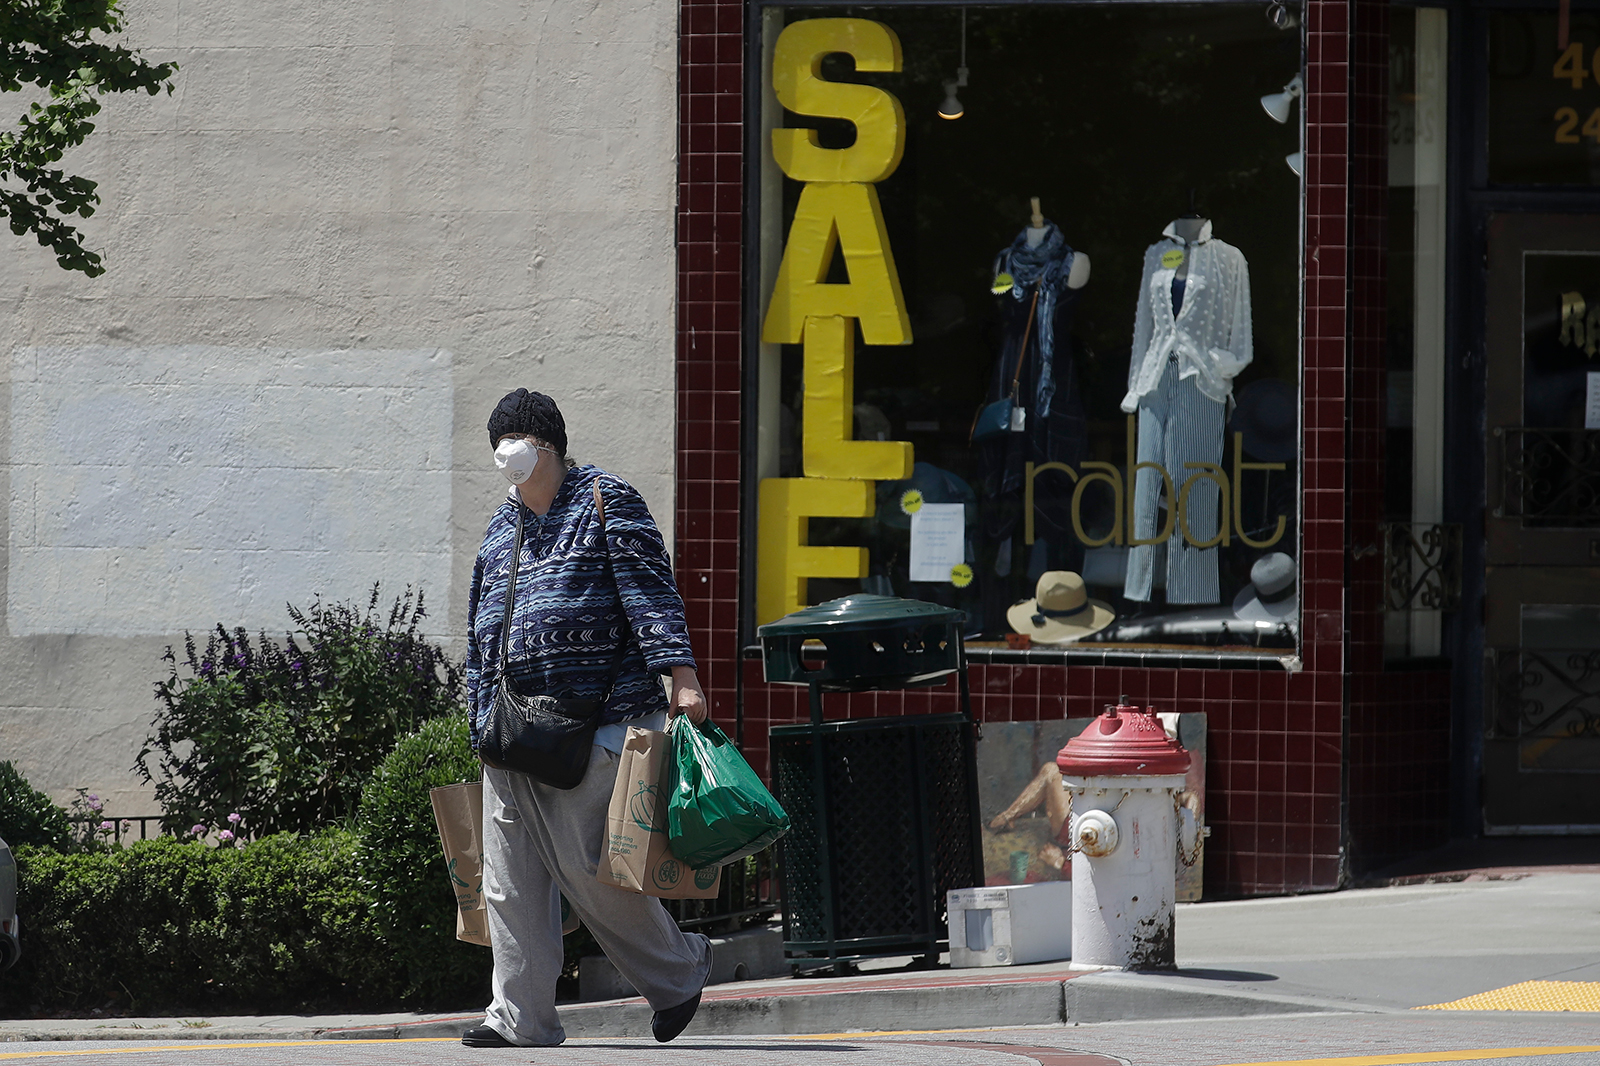 A woman carries shopping bags during the coronavirus outbreak in San Francisco, on Thursday, May 7.